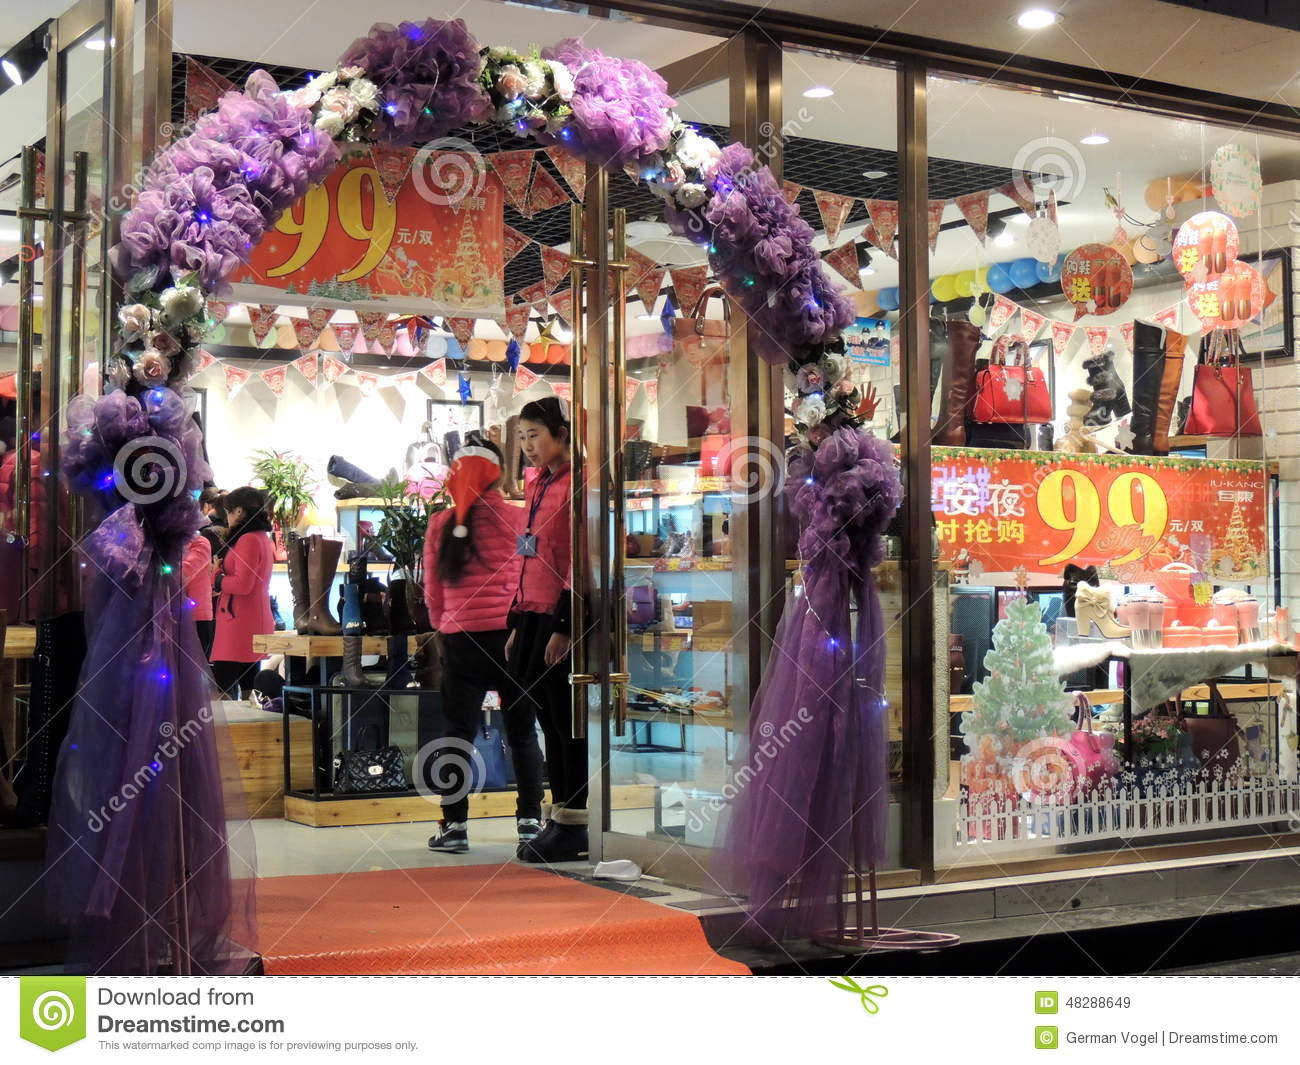 China shoes and purses shop christmas decorations sales for Salon xmas decorations